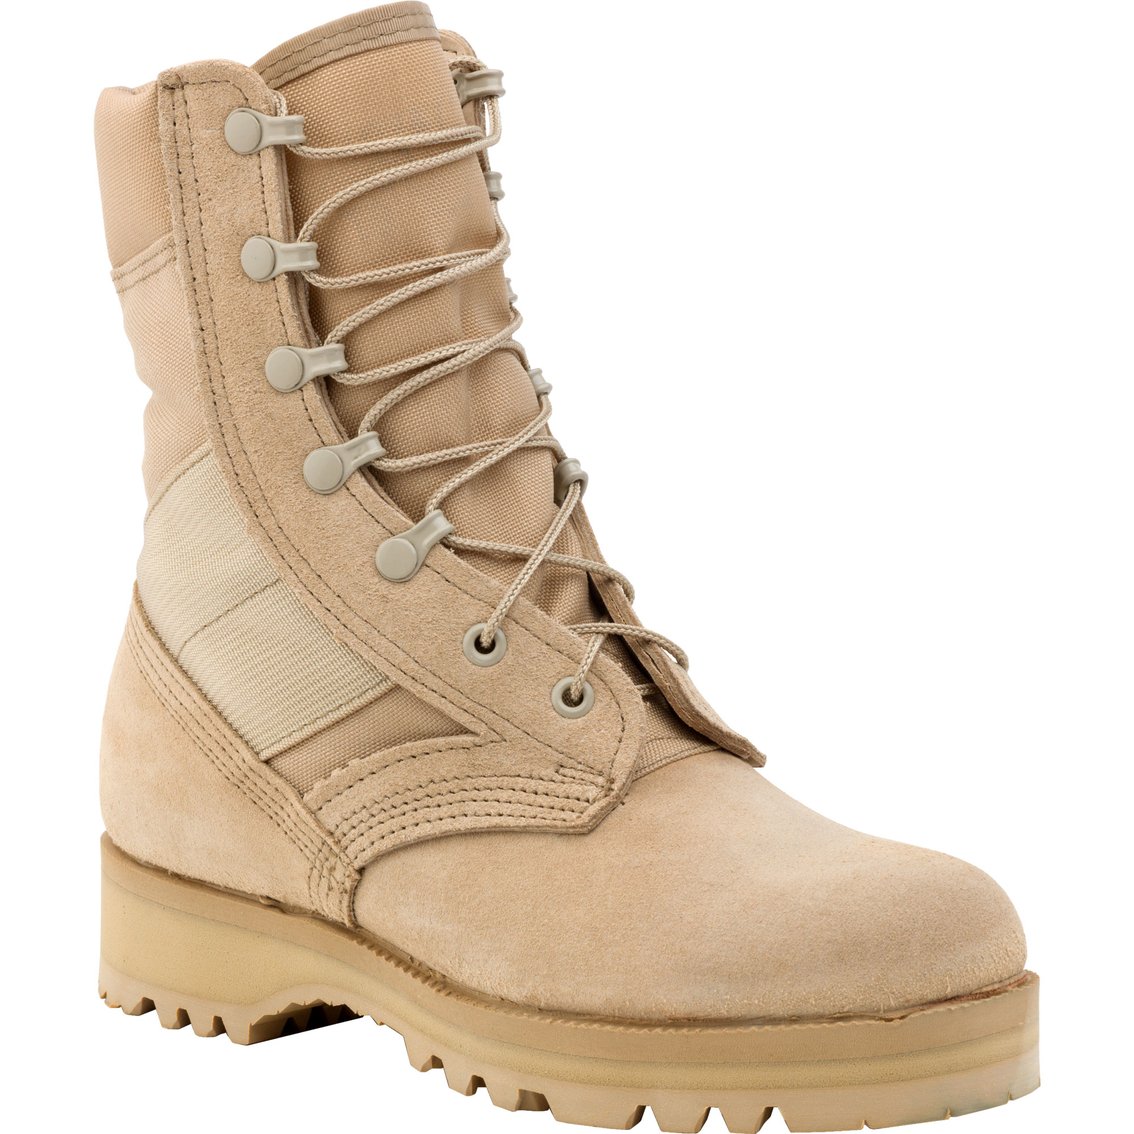 Dlats Issue Desert Combat Boot | Z_military - Nla_space Junk ...